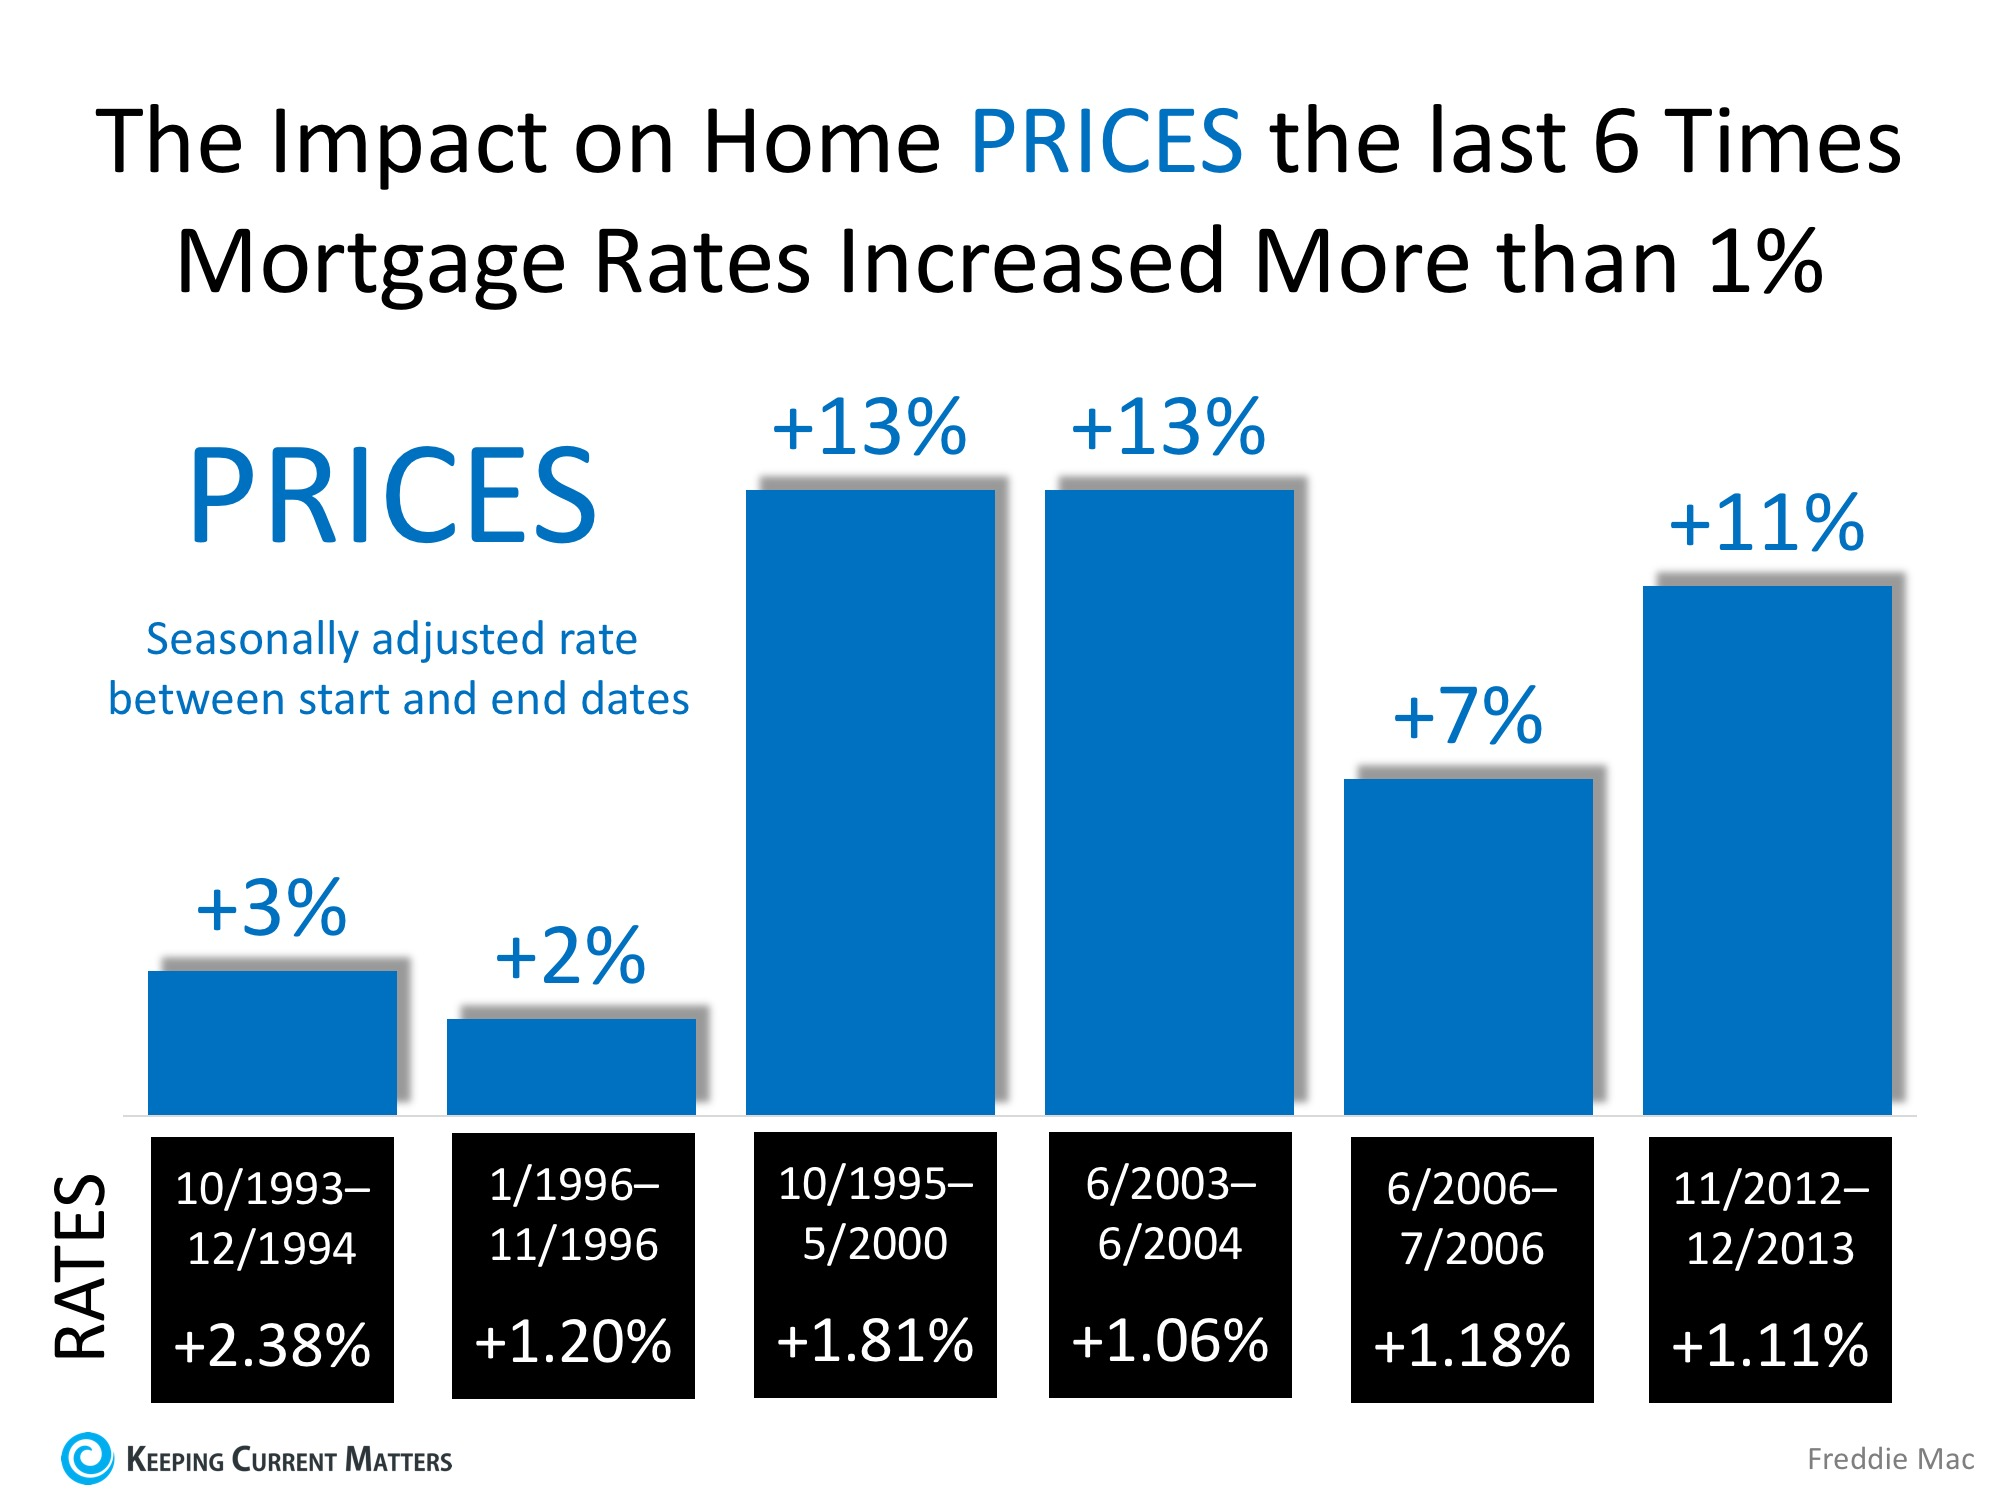 Freddie Mac: Rising Mortgage Rates DO NOT Lead to Falling Home Prices | Keeping Current Matters